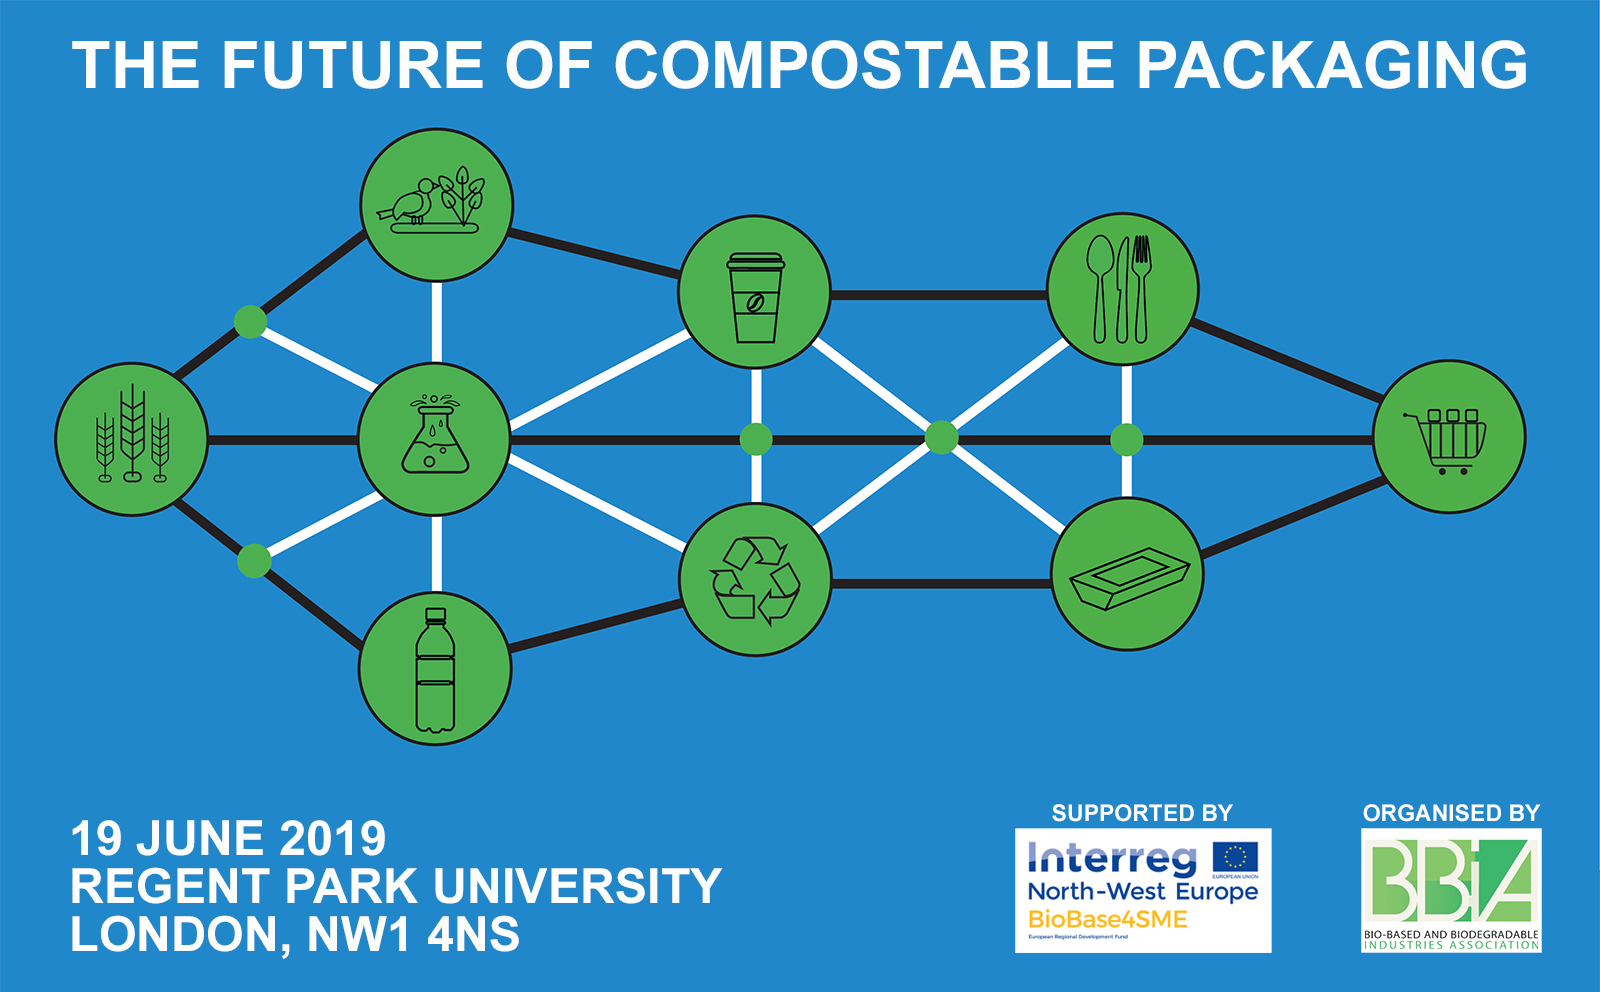 Future of Compostable Packaging